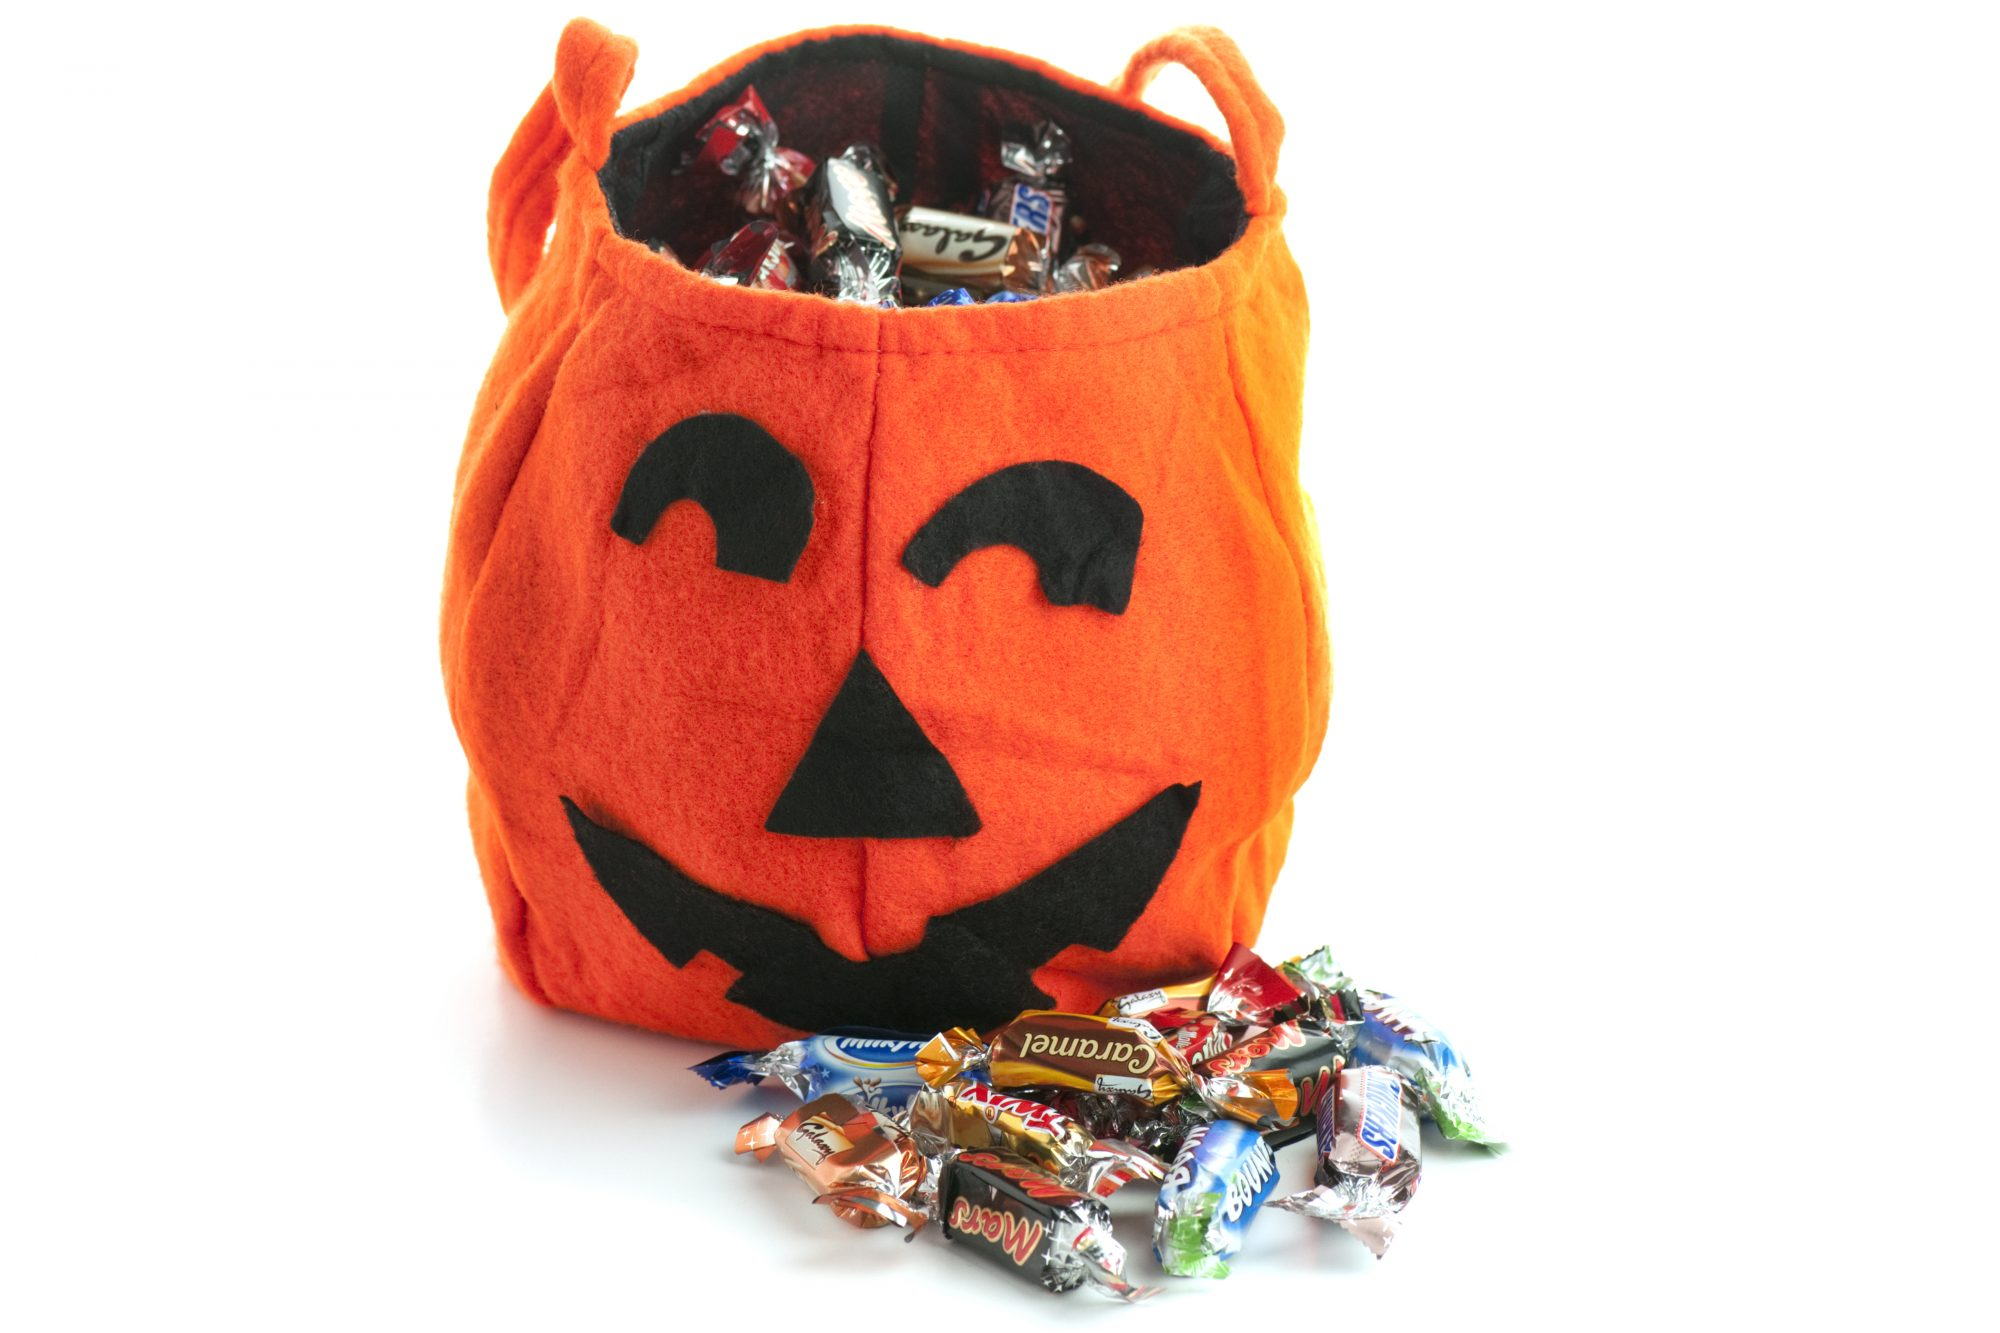 Halloween Trick or Treat Pumpkin bag with candy